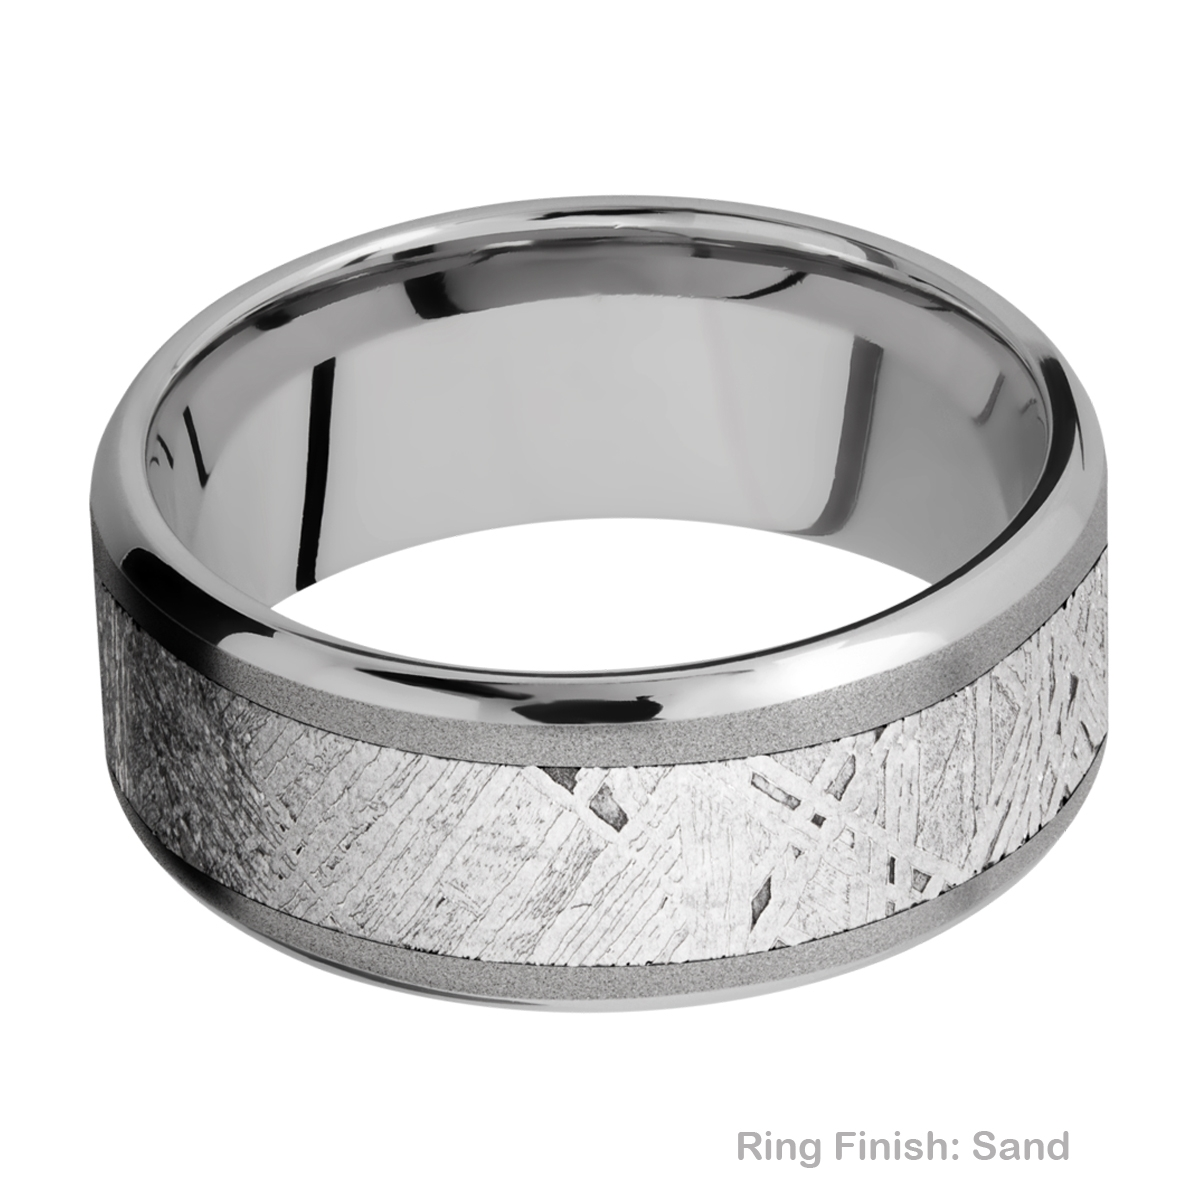 Lashbrook 9B16(NS)/METEORITE Titanium Wedding Ring or Band Alternative View 3